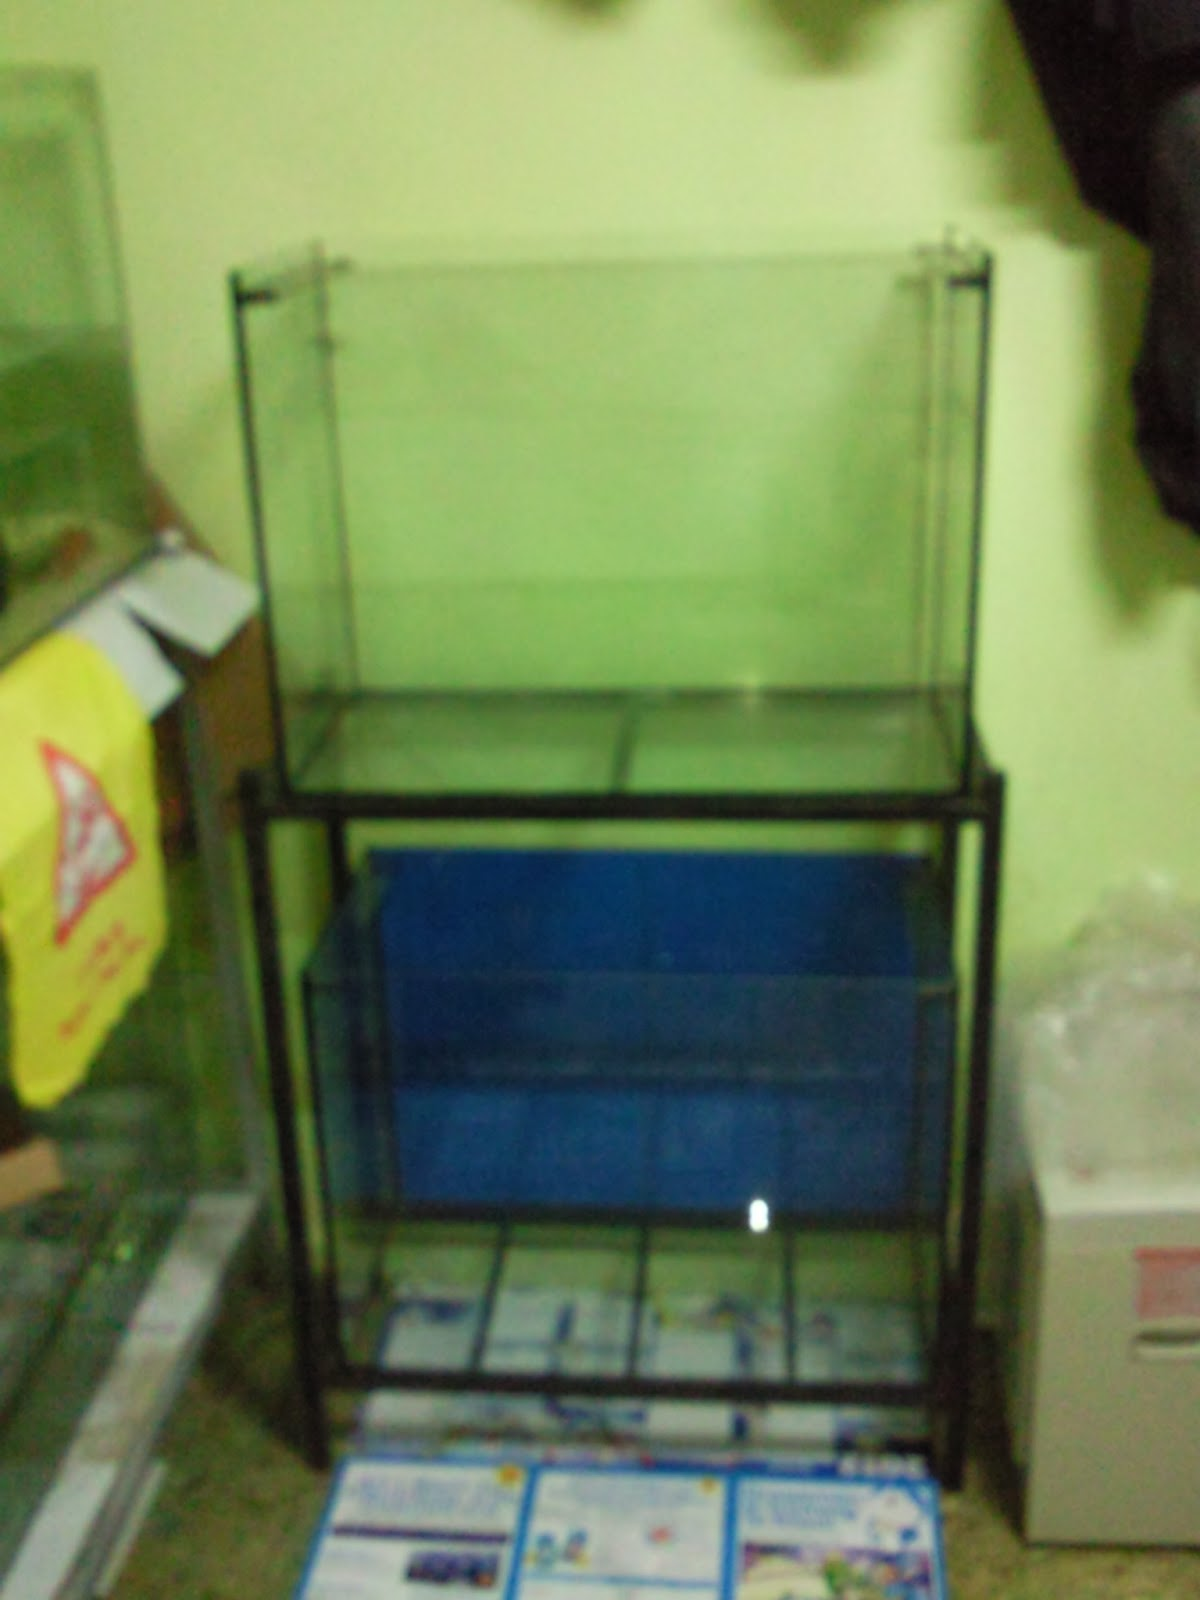 Tropical fisher man fish tanks and aquarium crs january 2014 for Used fish tanks for sale many sizes